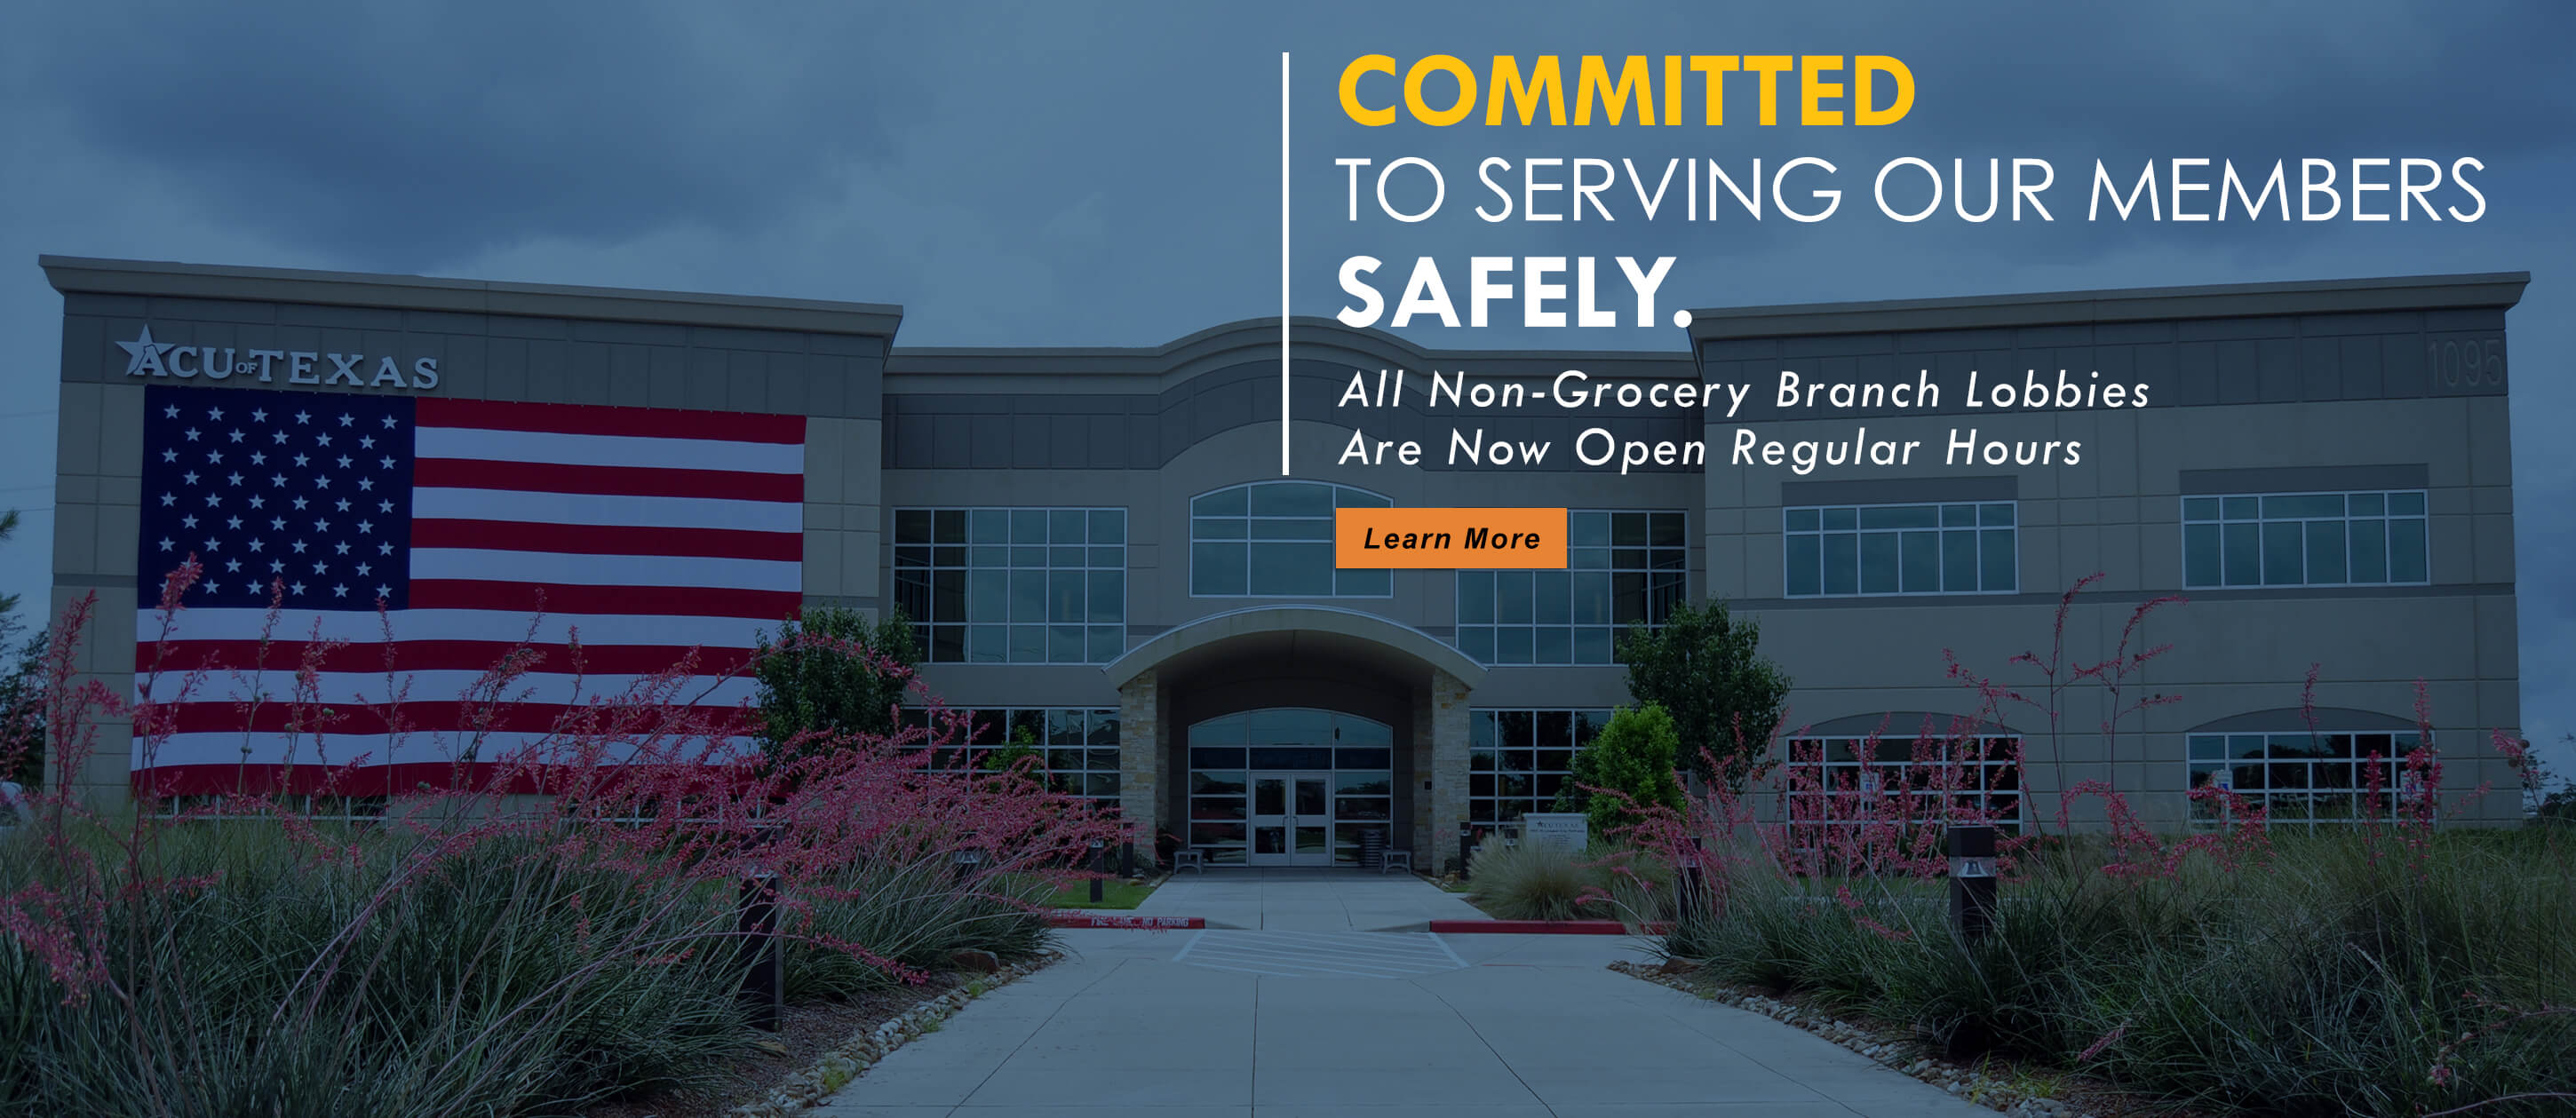 Committed To Serving Our Members - All Non-Grocery Branch Lobbies Now Open